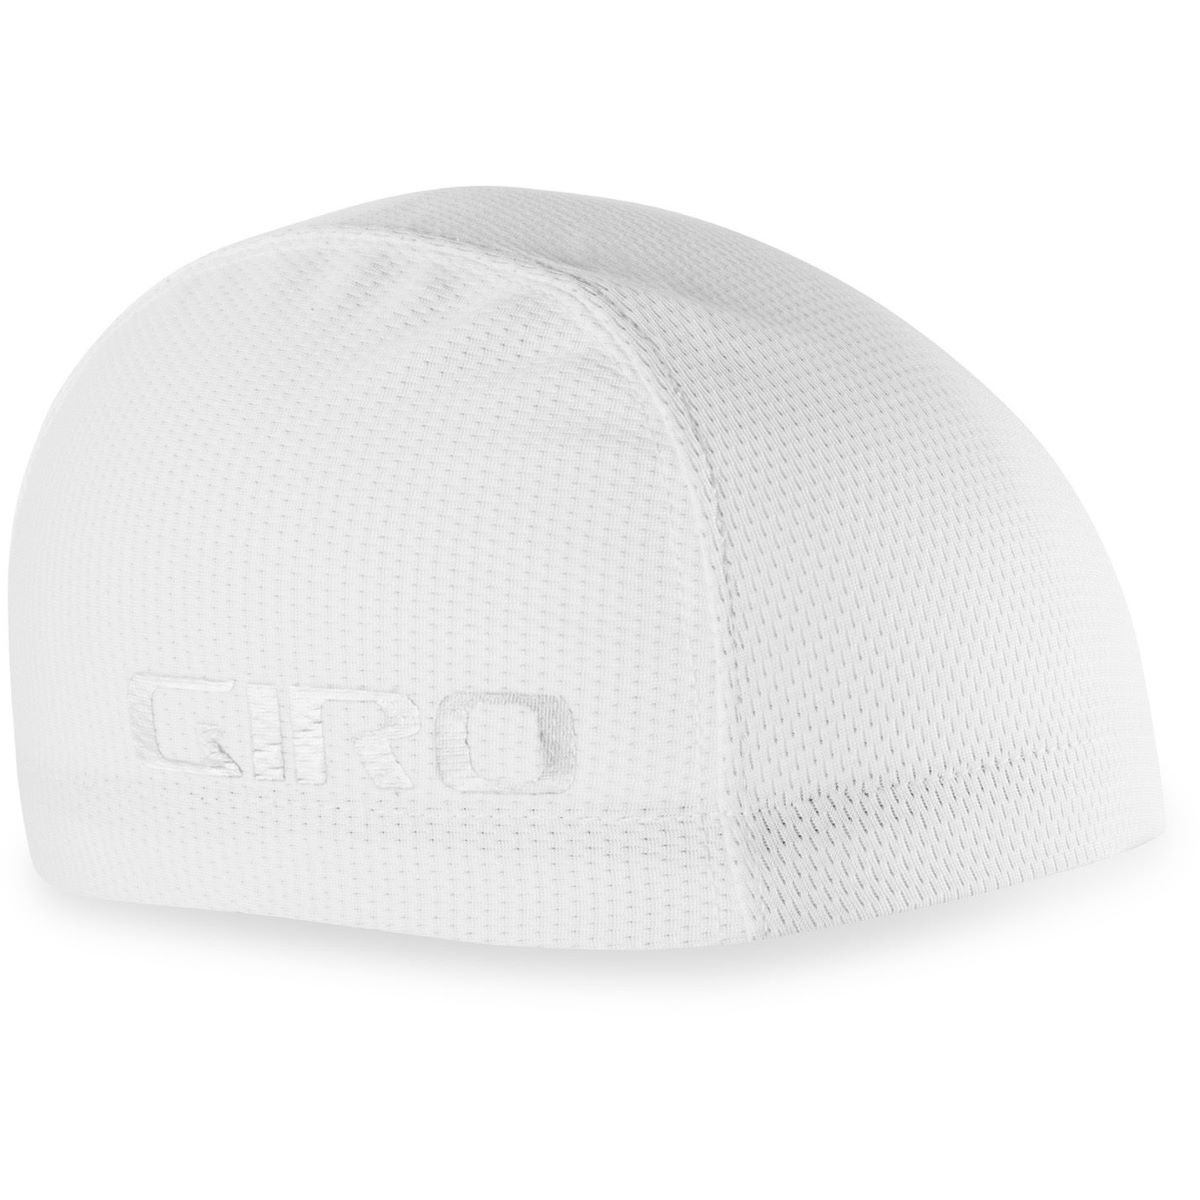 Image of Bonnet Giro SPF30 Ultralight - Taille unique Blanc